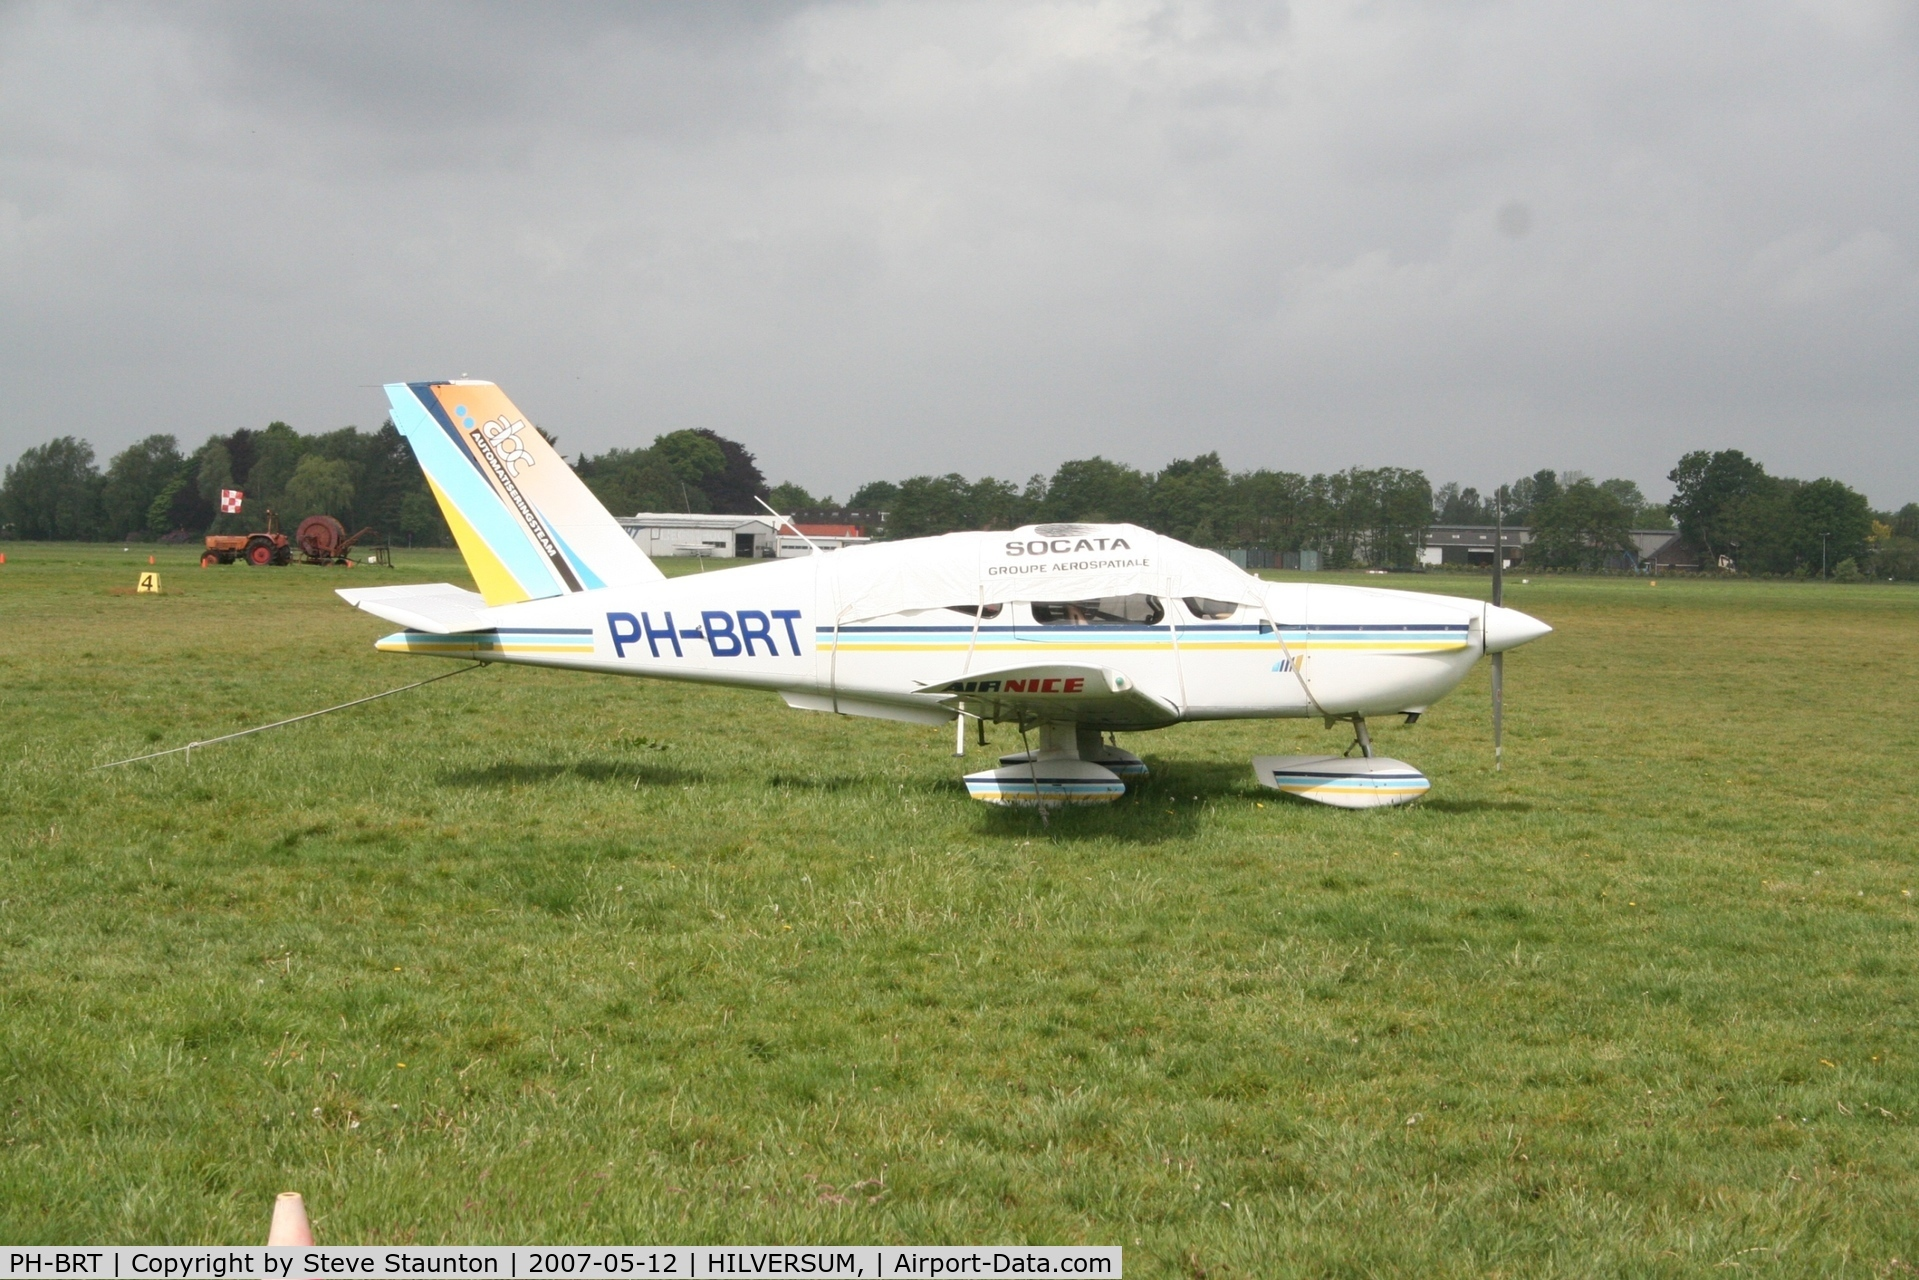 PH-BRT, Socata TB-9 GA C/N 125, Taken on a recent Aeroprint tour